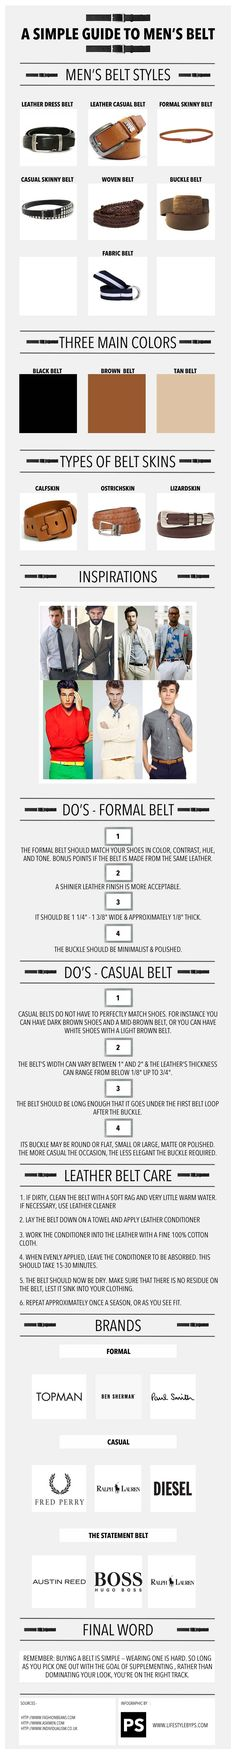 A Simple Guide to Men's Belt - Infographic